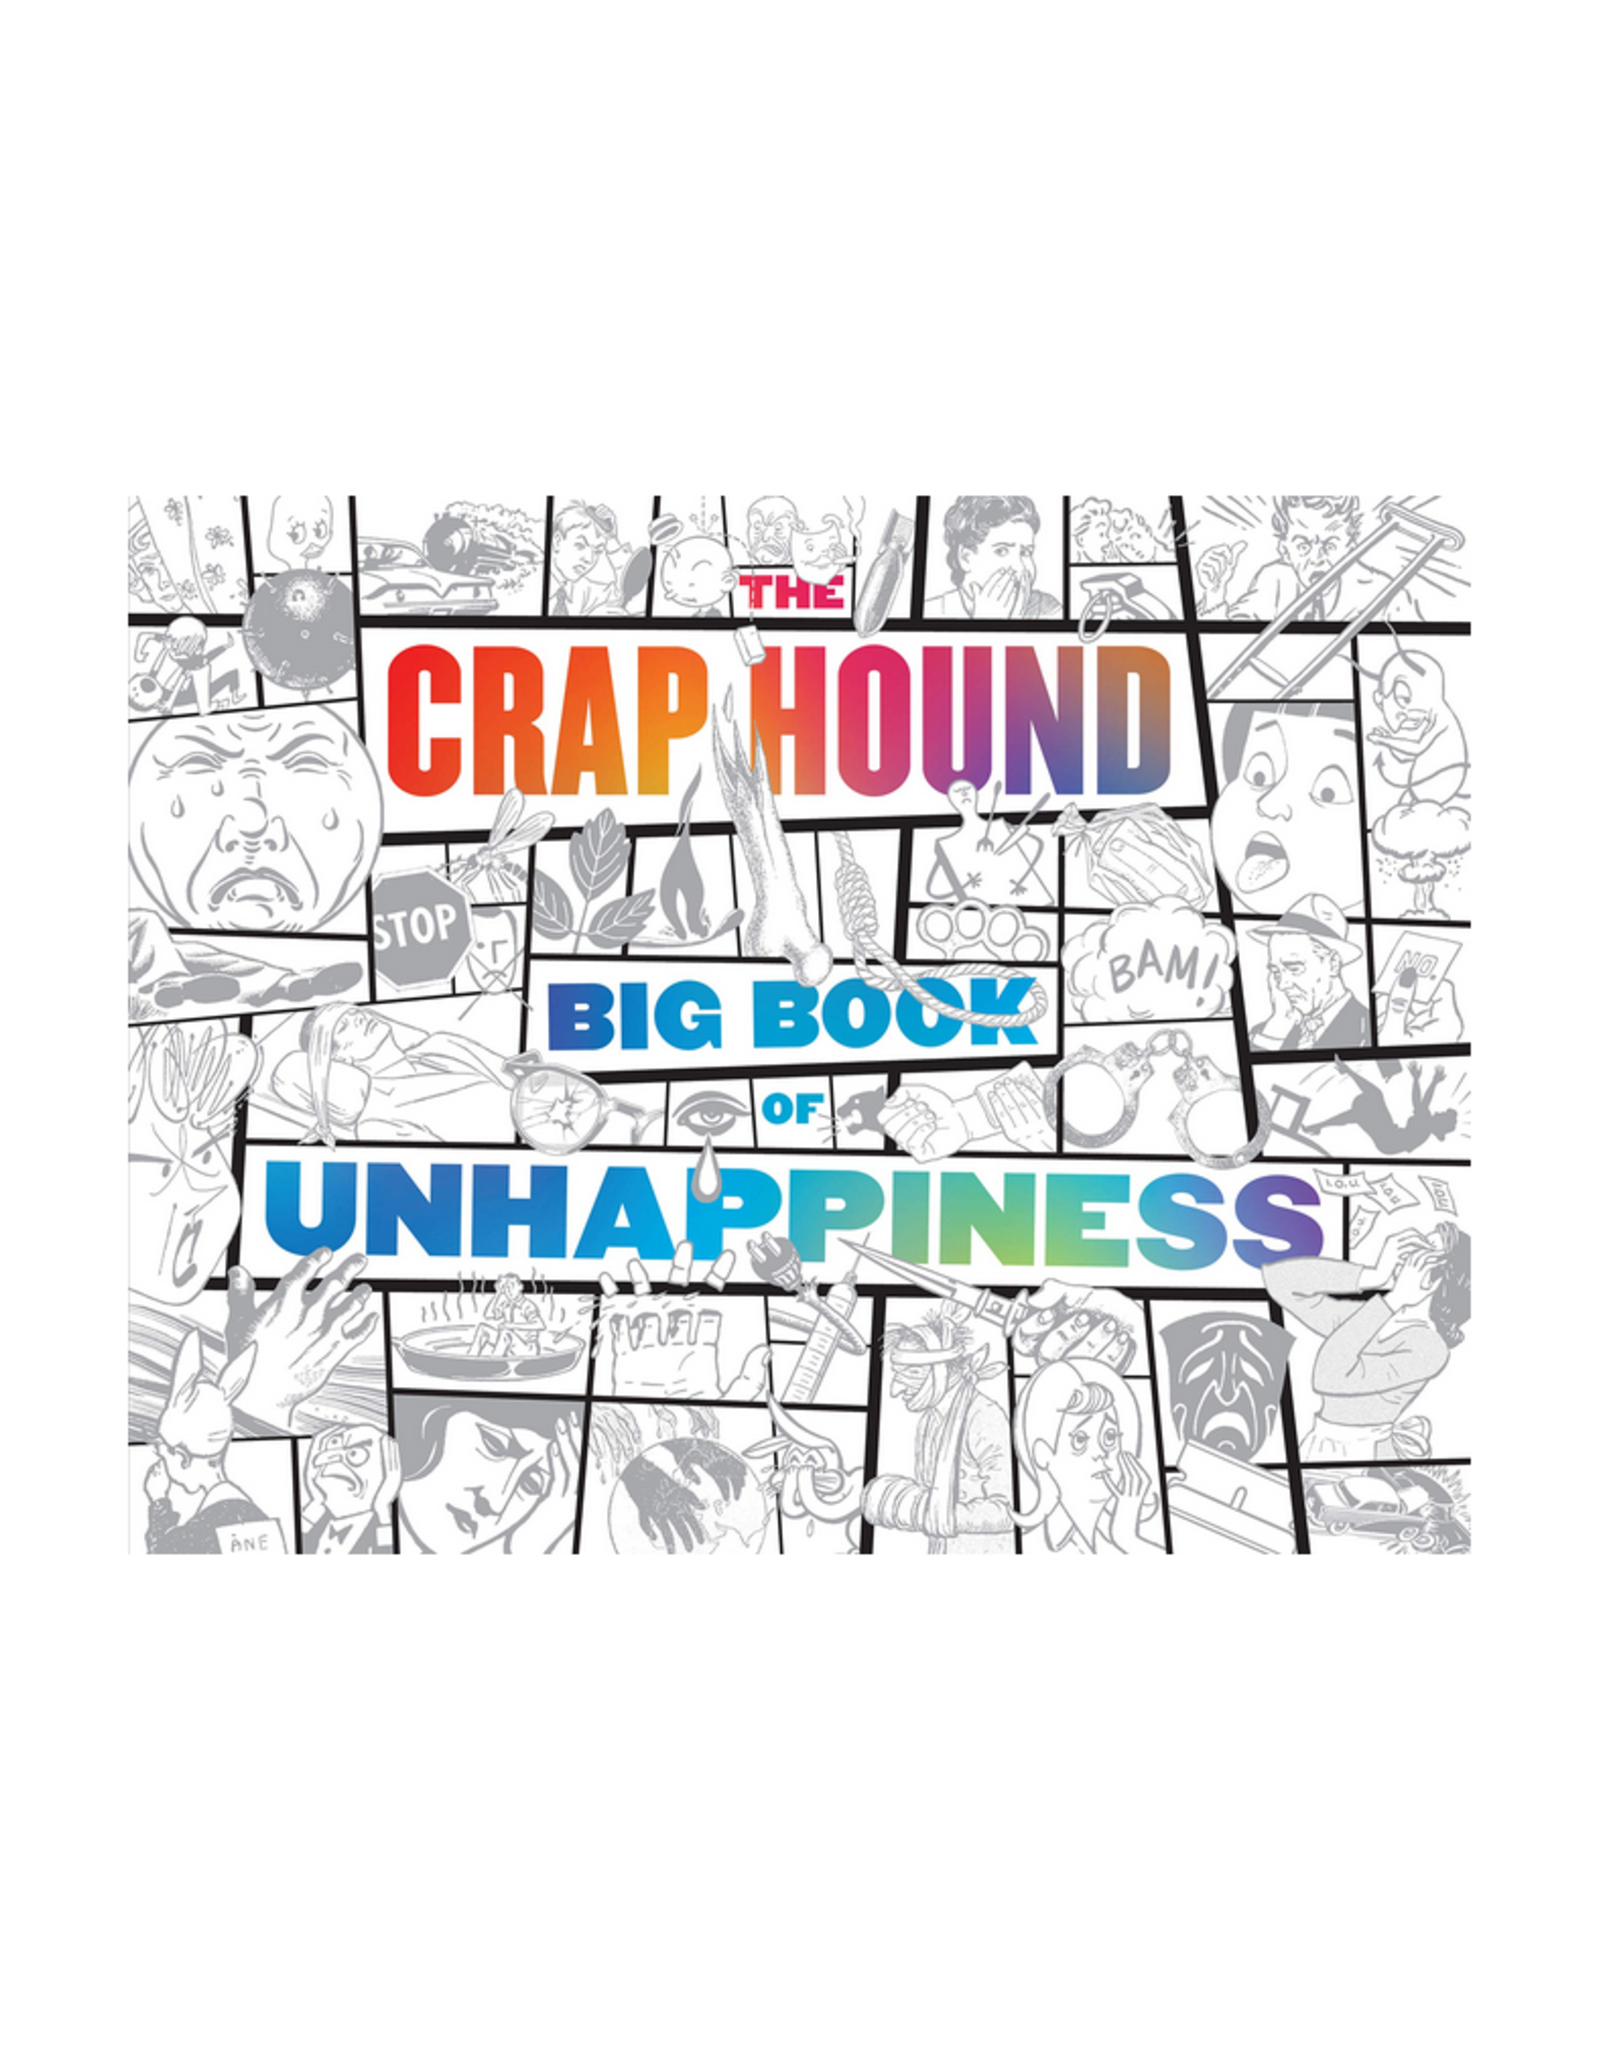 Craphound Book of Unhappiness